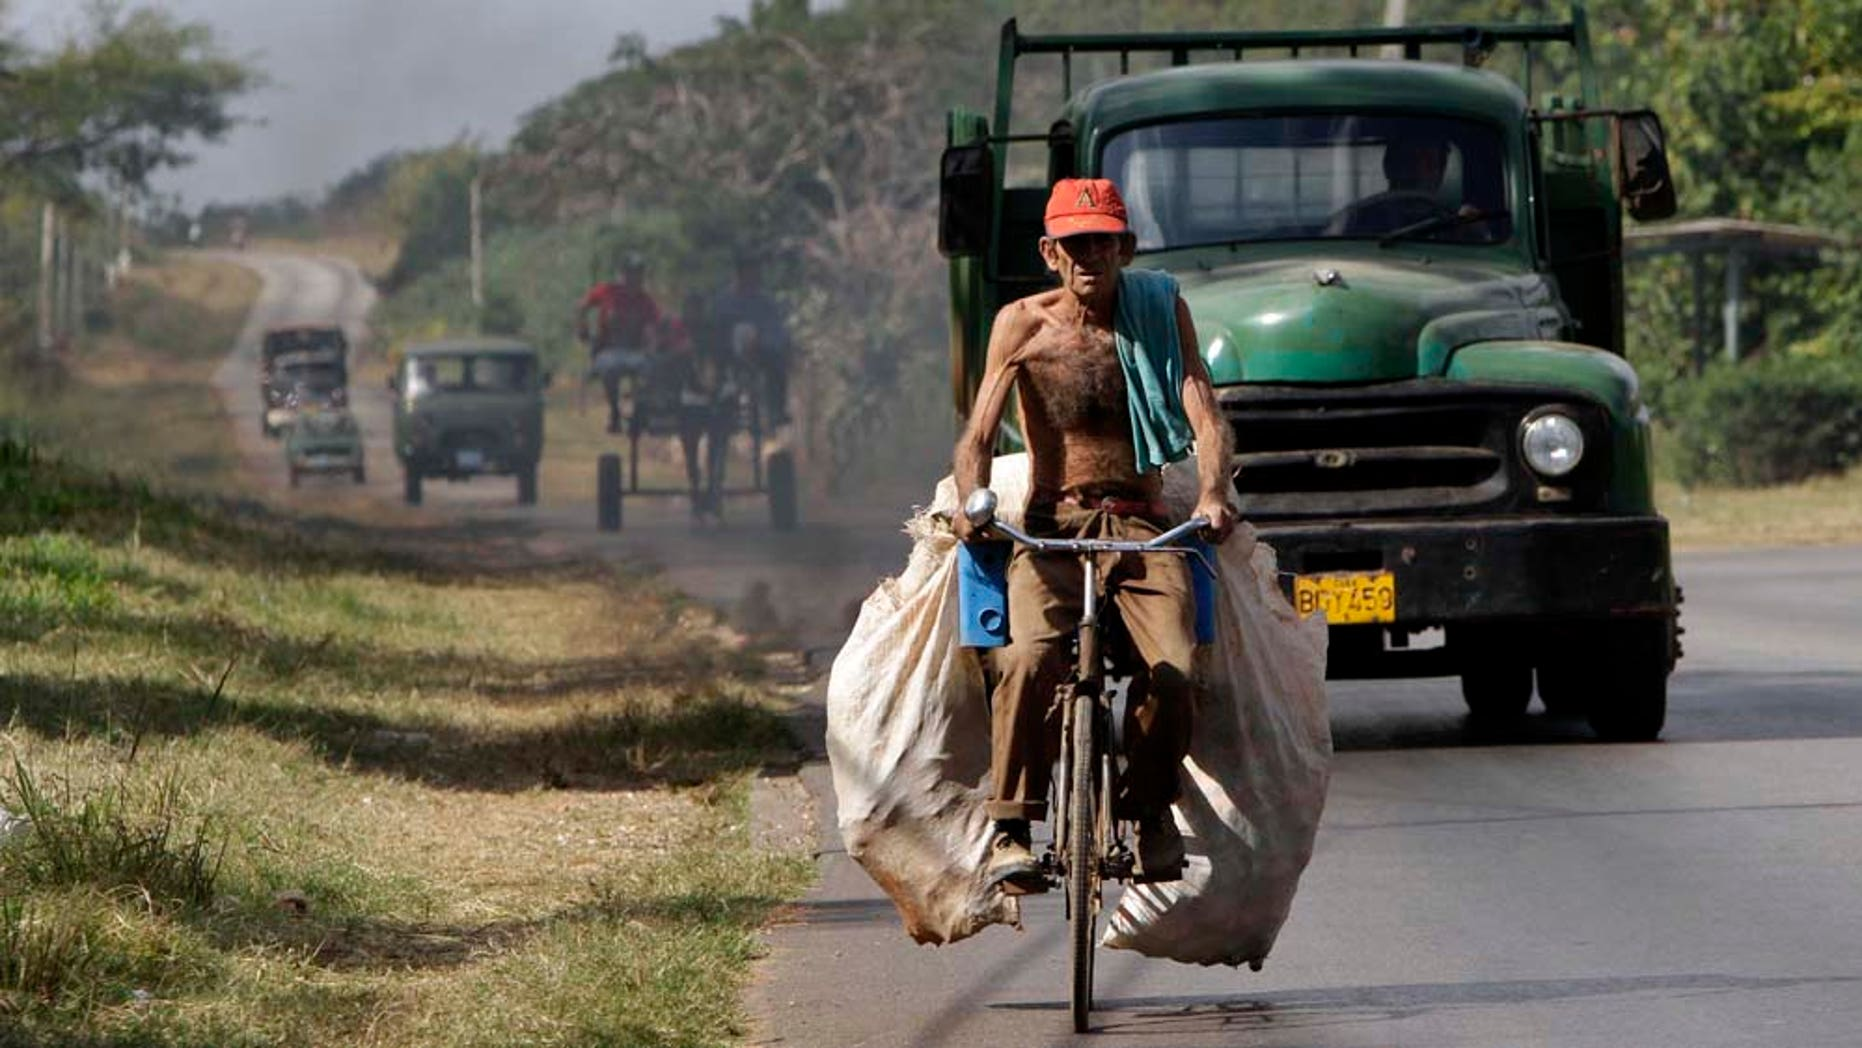 A man carries sacks with beer cans to recycle on his bicycle in Havana, Cuba, Thursday, Jan. 6, 2011. (AP Photo/Franklin Reyes)